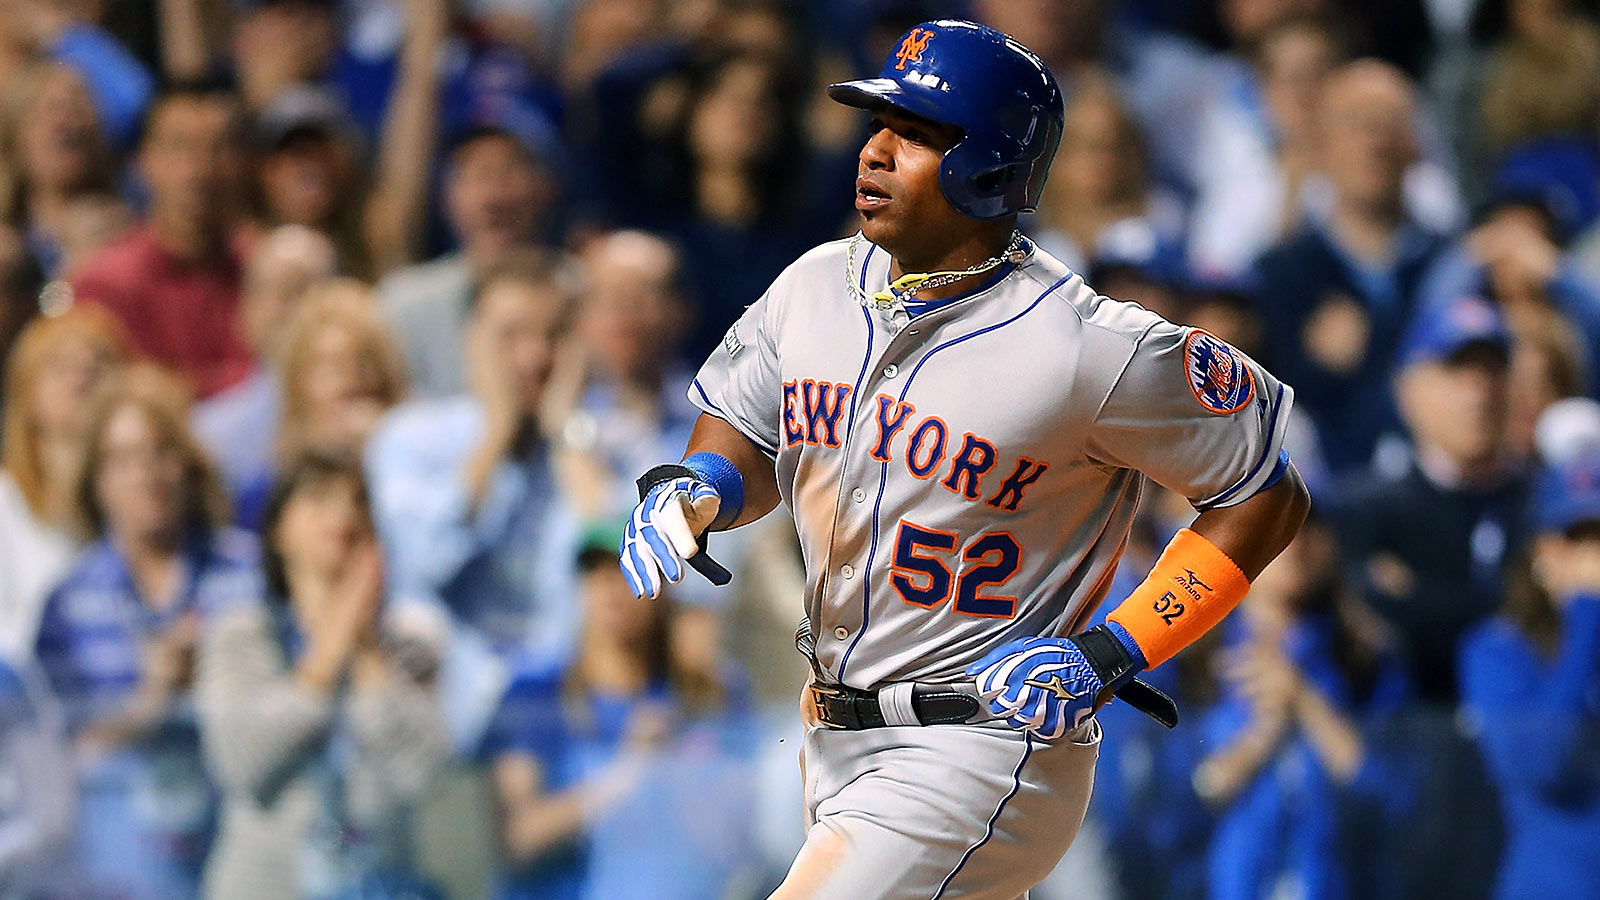 Mets asst. GM: Cespedes looking for deal we can't afford